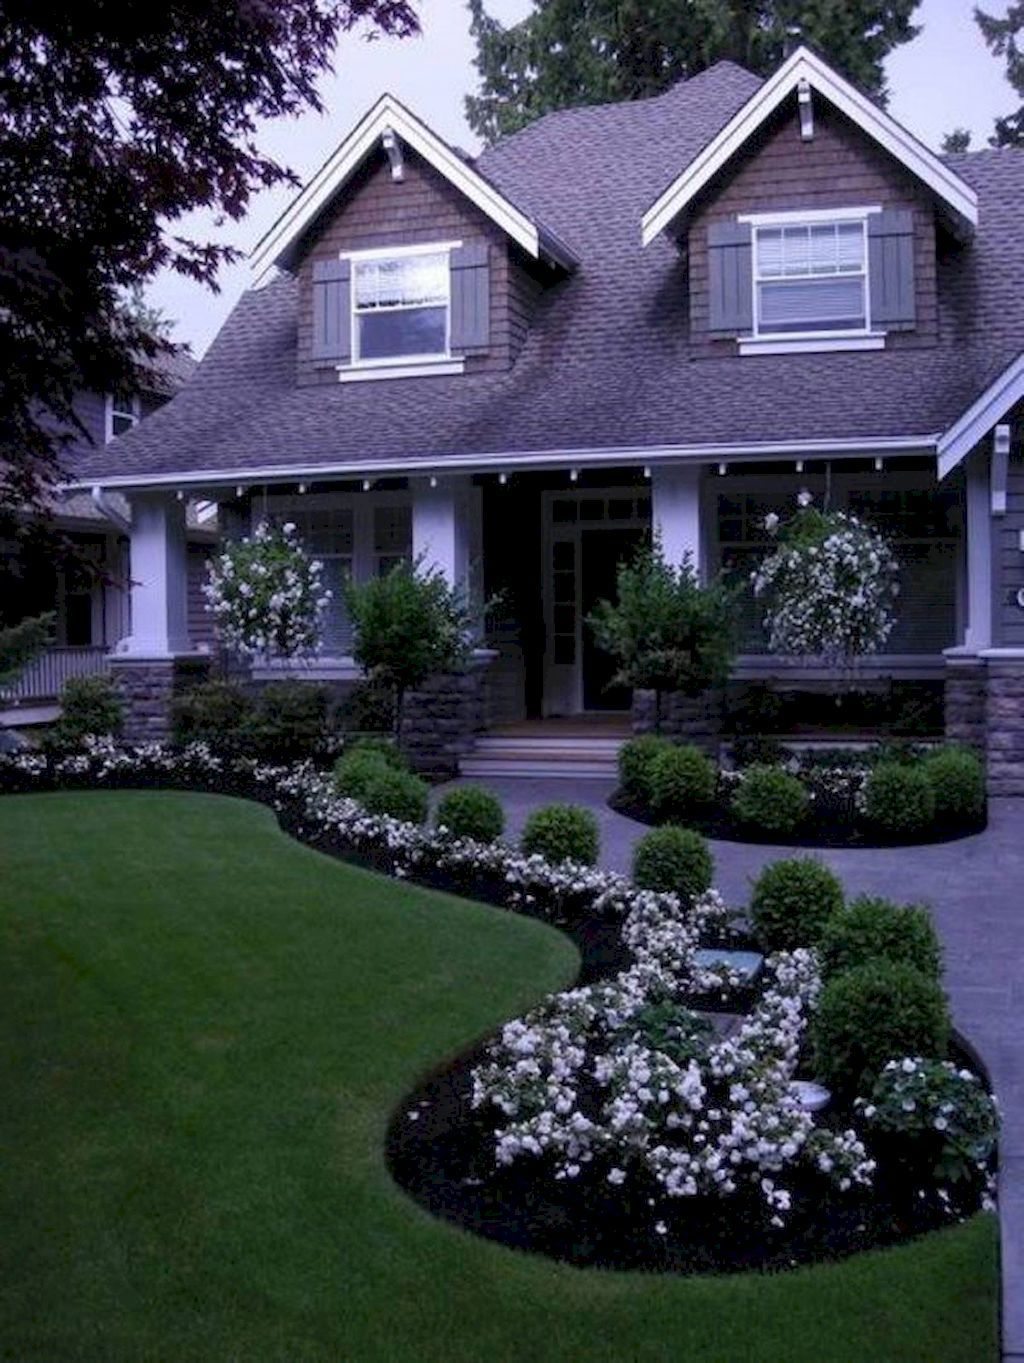 40 beautiful front yard landscaping ideas yard for Home front landscape design